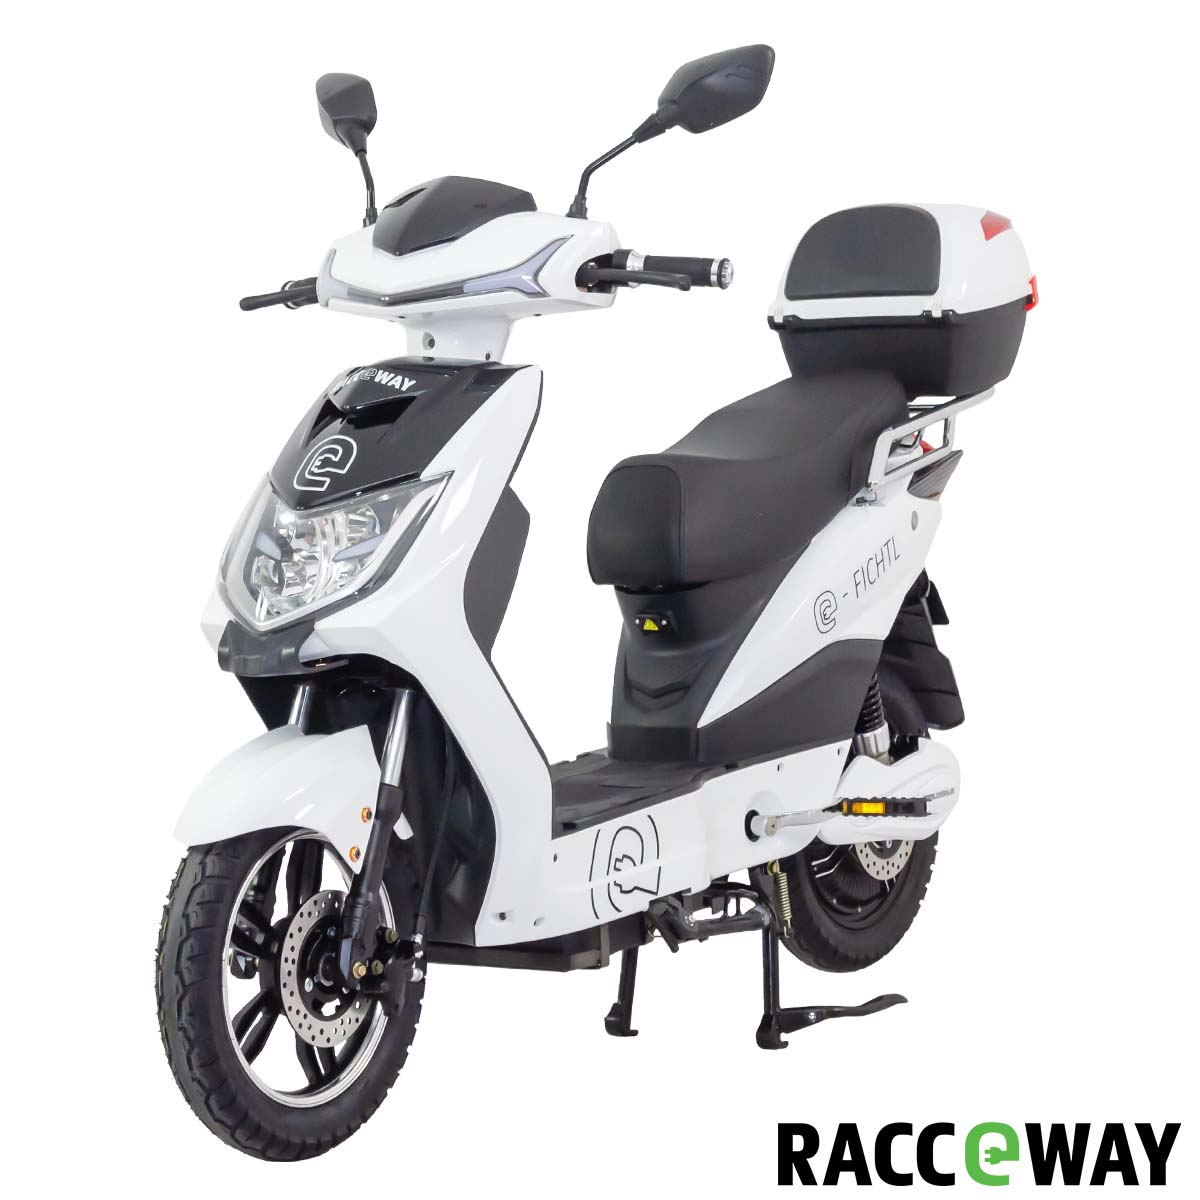 https://www.racceway.cz/inshop/catalogue/products/pictures/motoe-1f-01_a2.jpg?timestamp=20210927084343